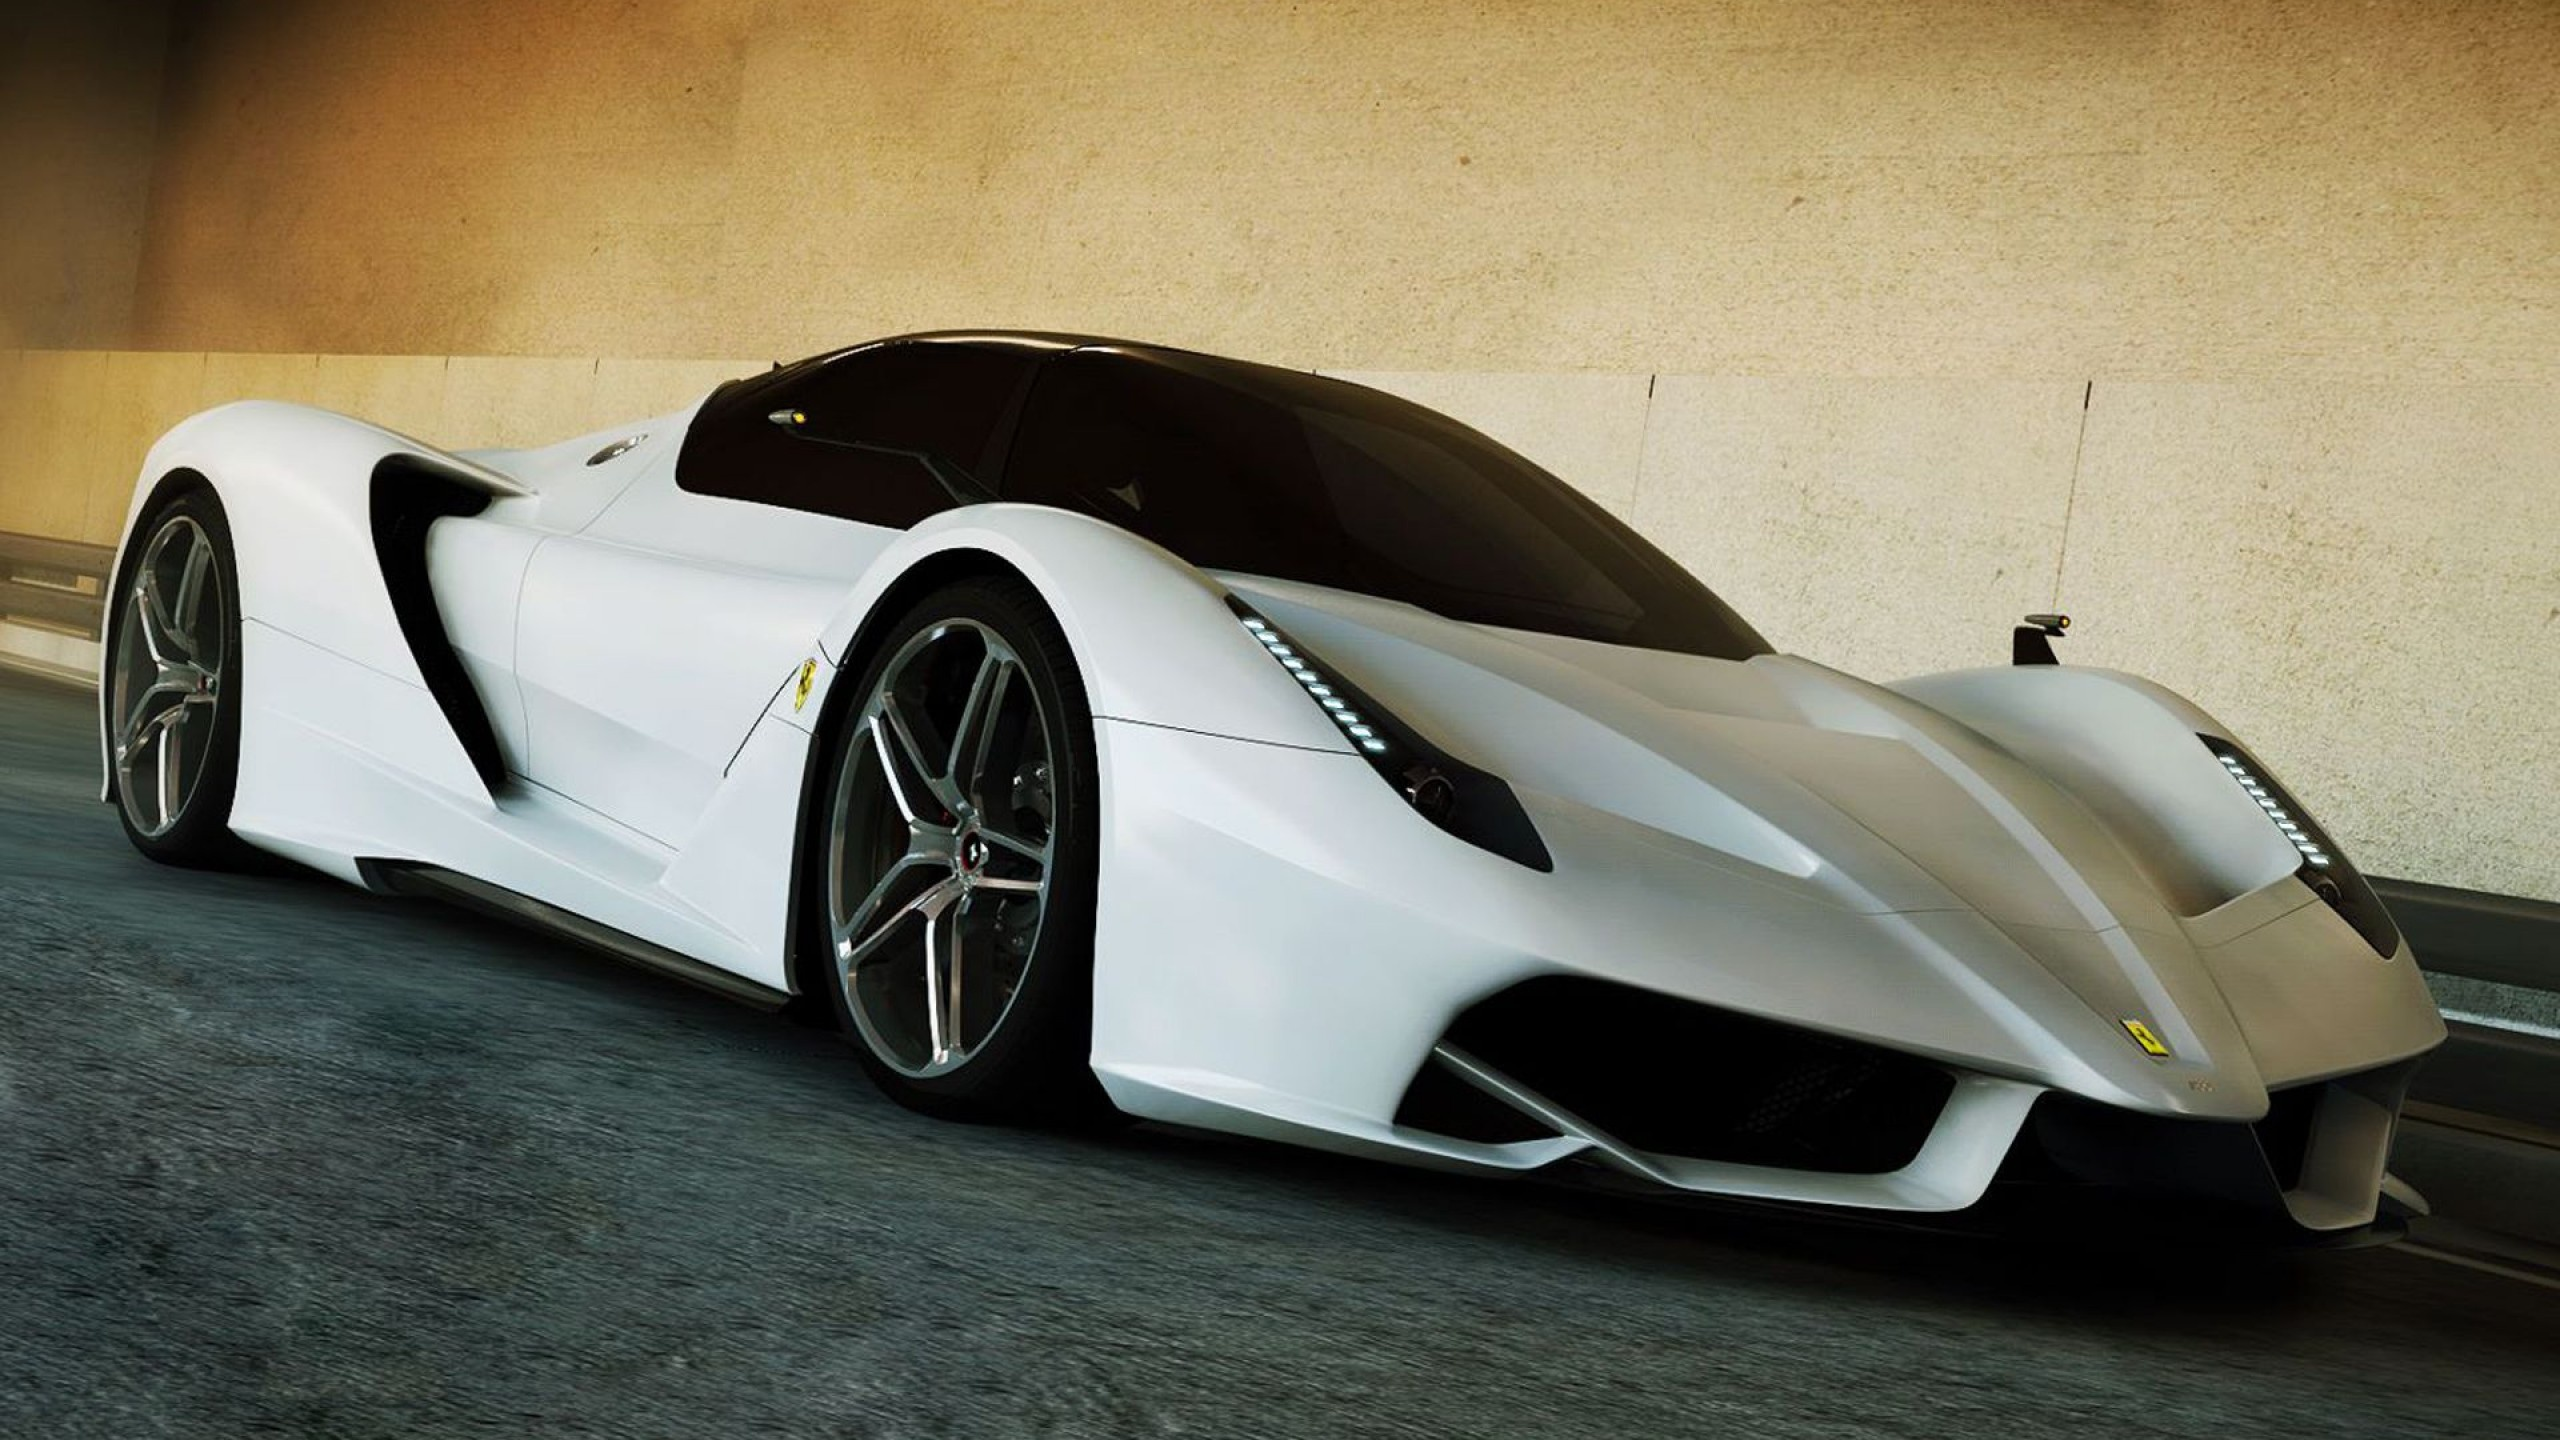 ferrari f70 conceptcar super car pictures desktop free